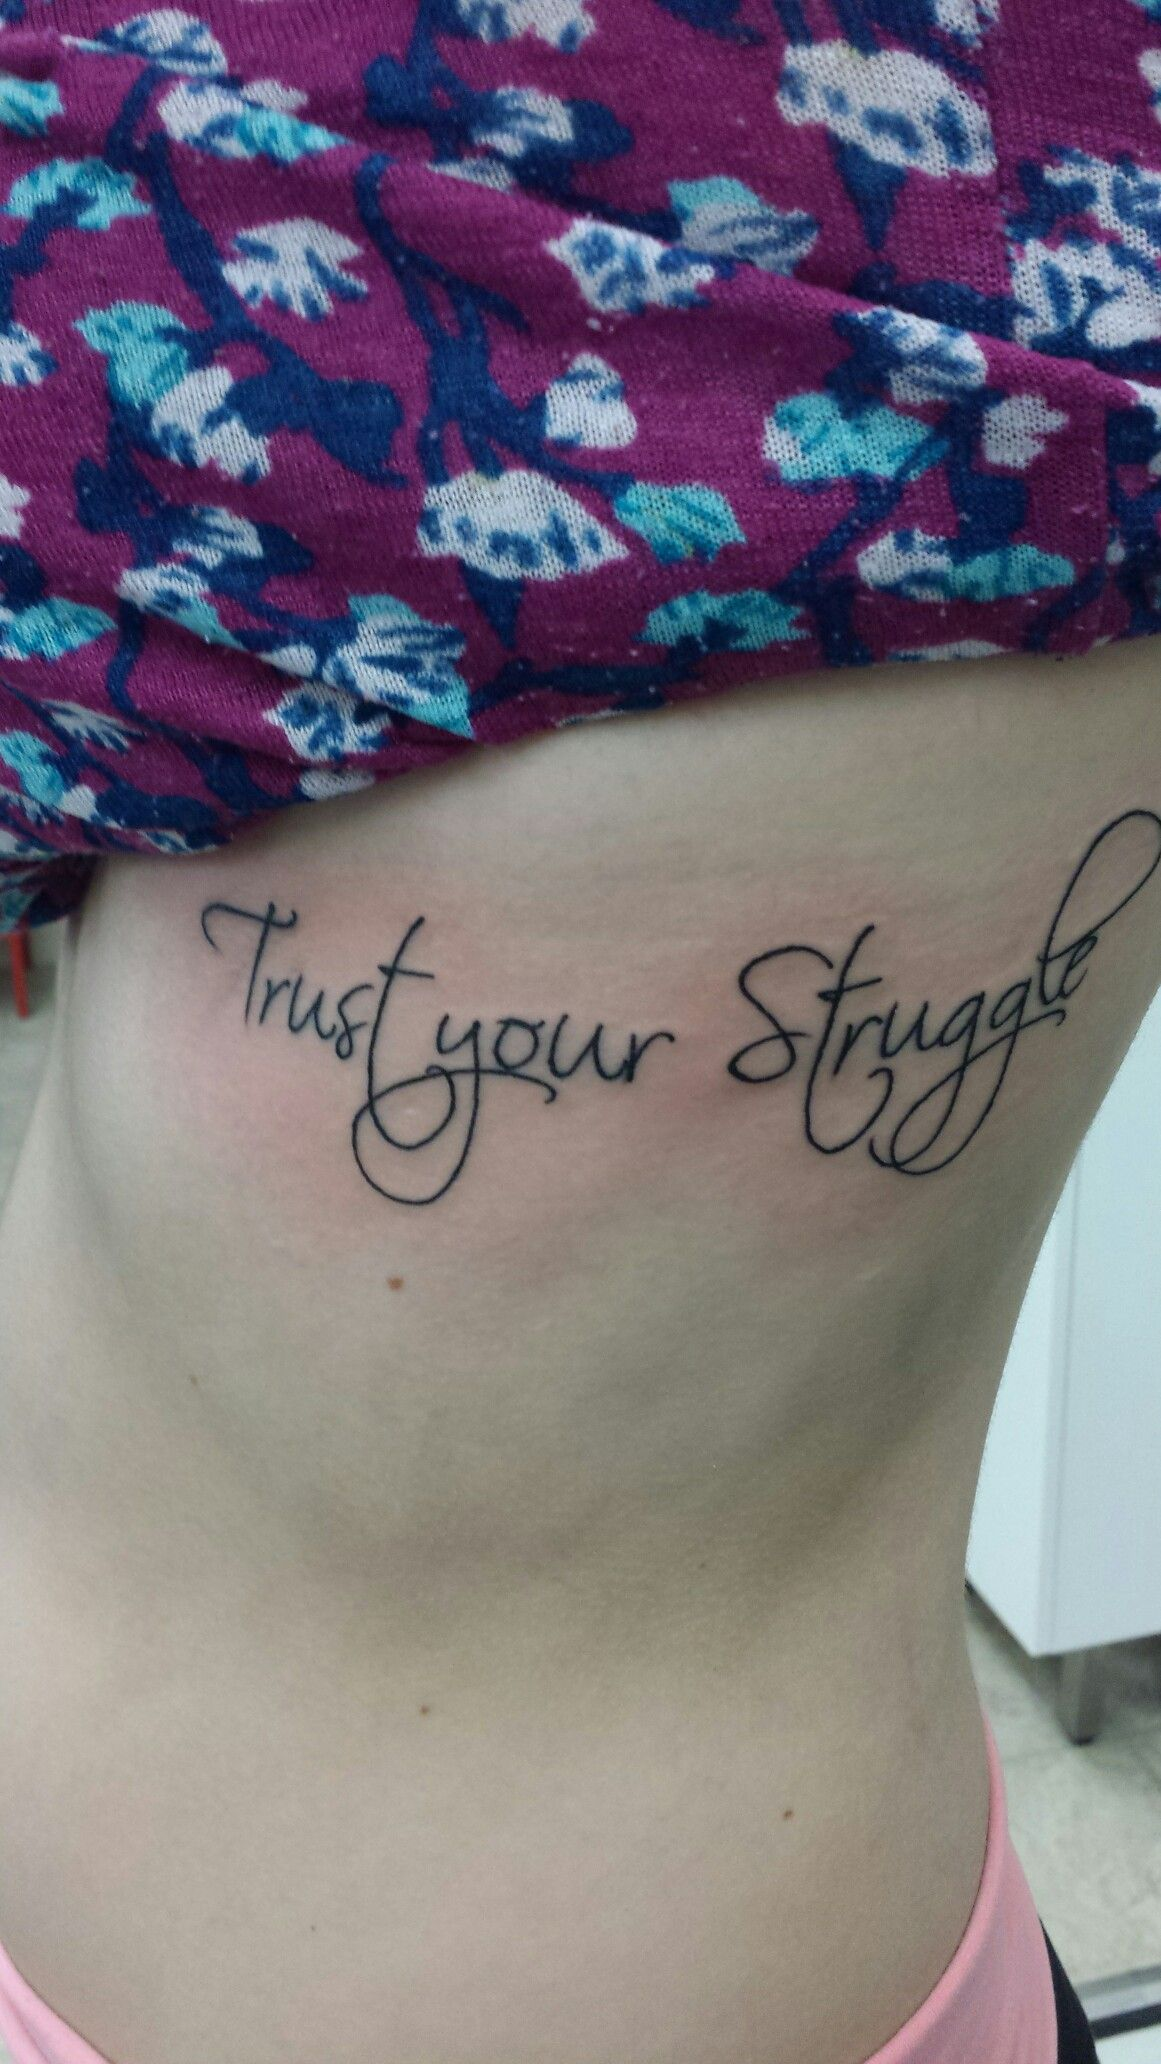 My Tattoo Trust Your Struggle Inspired By The Lotus Flower The